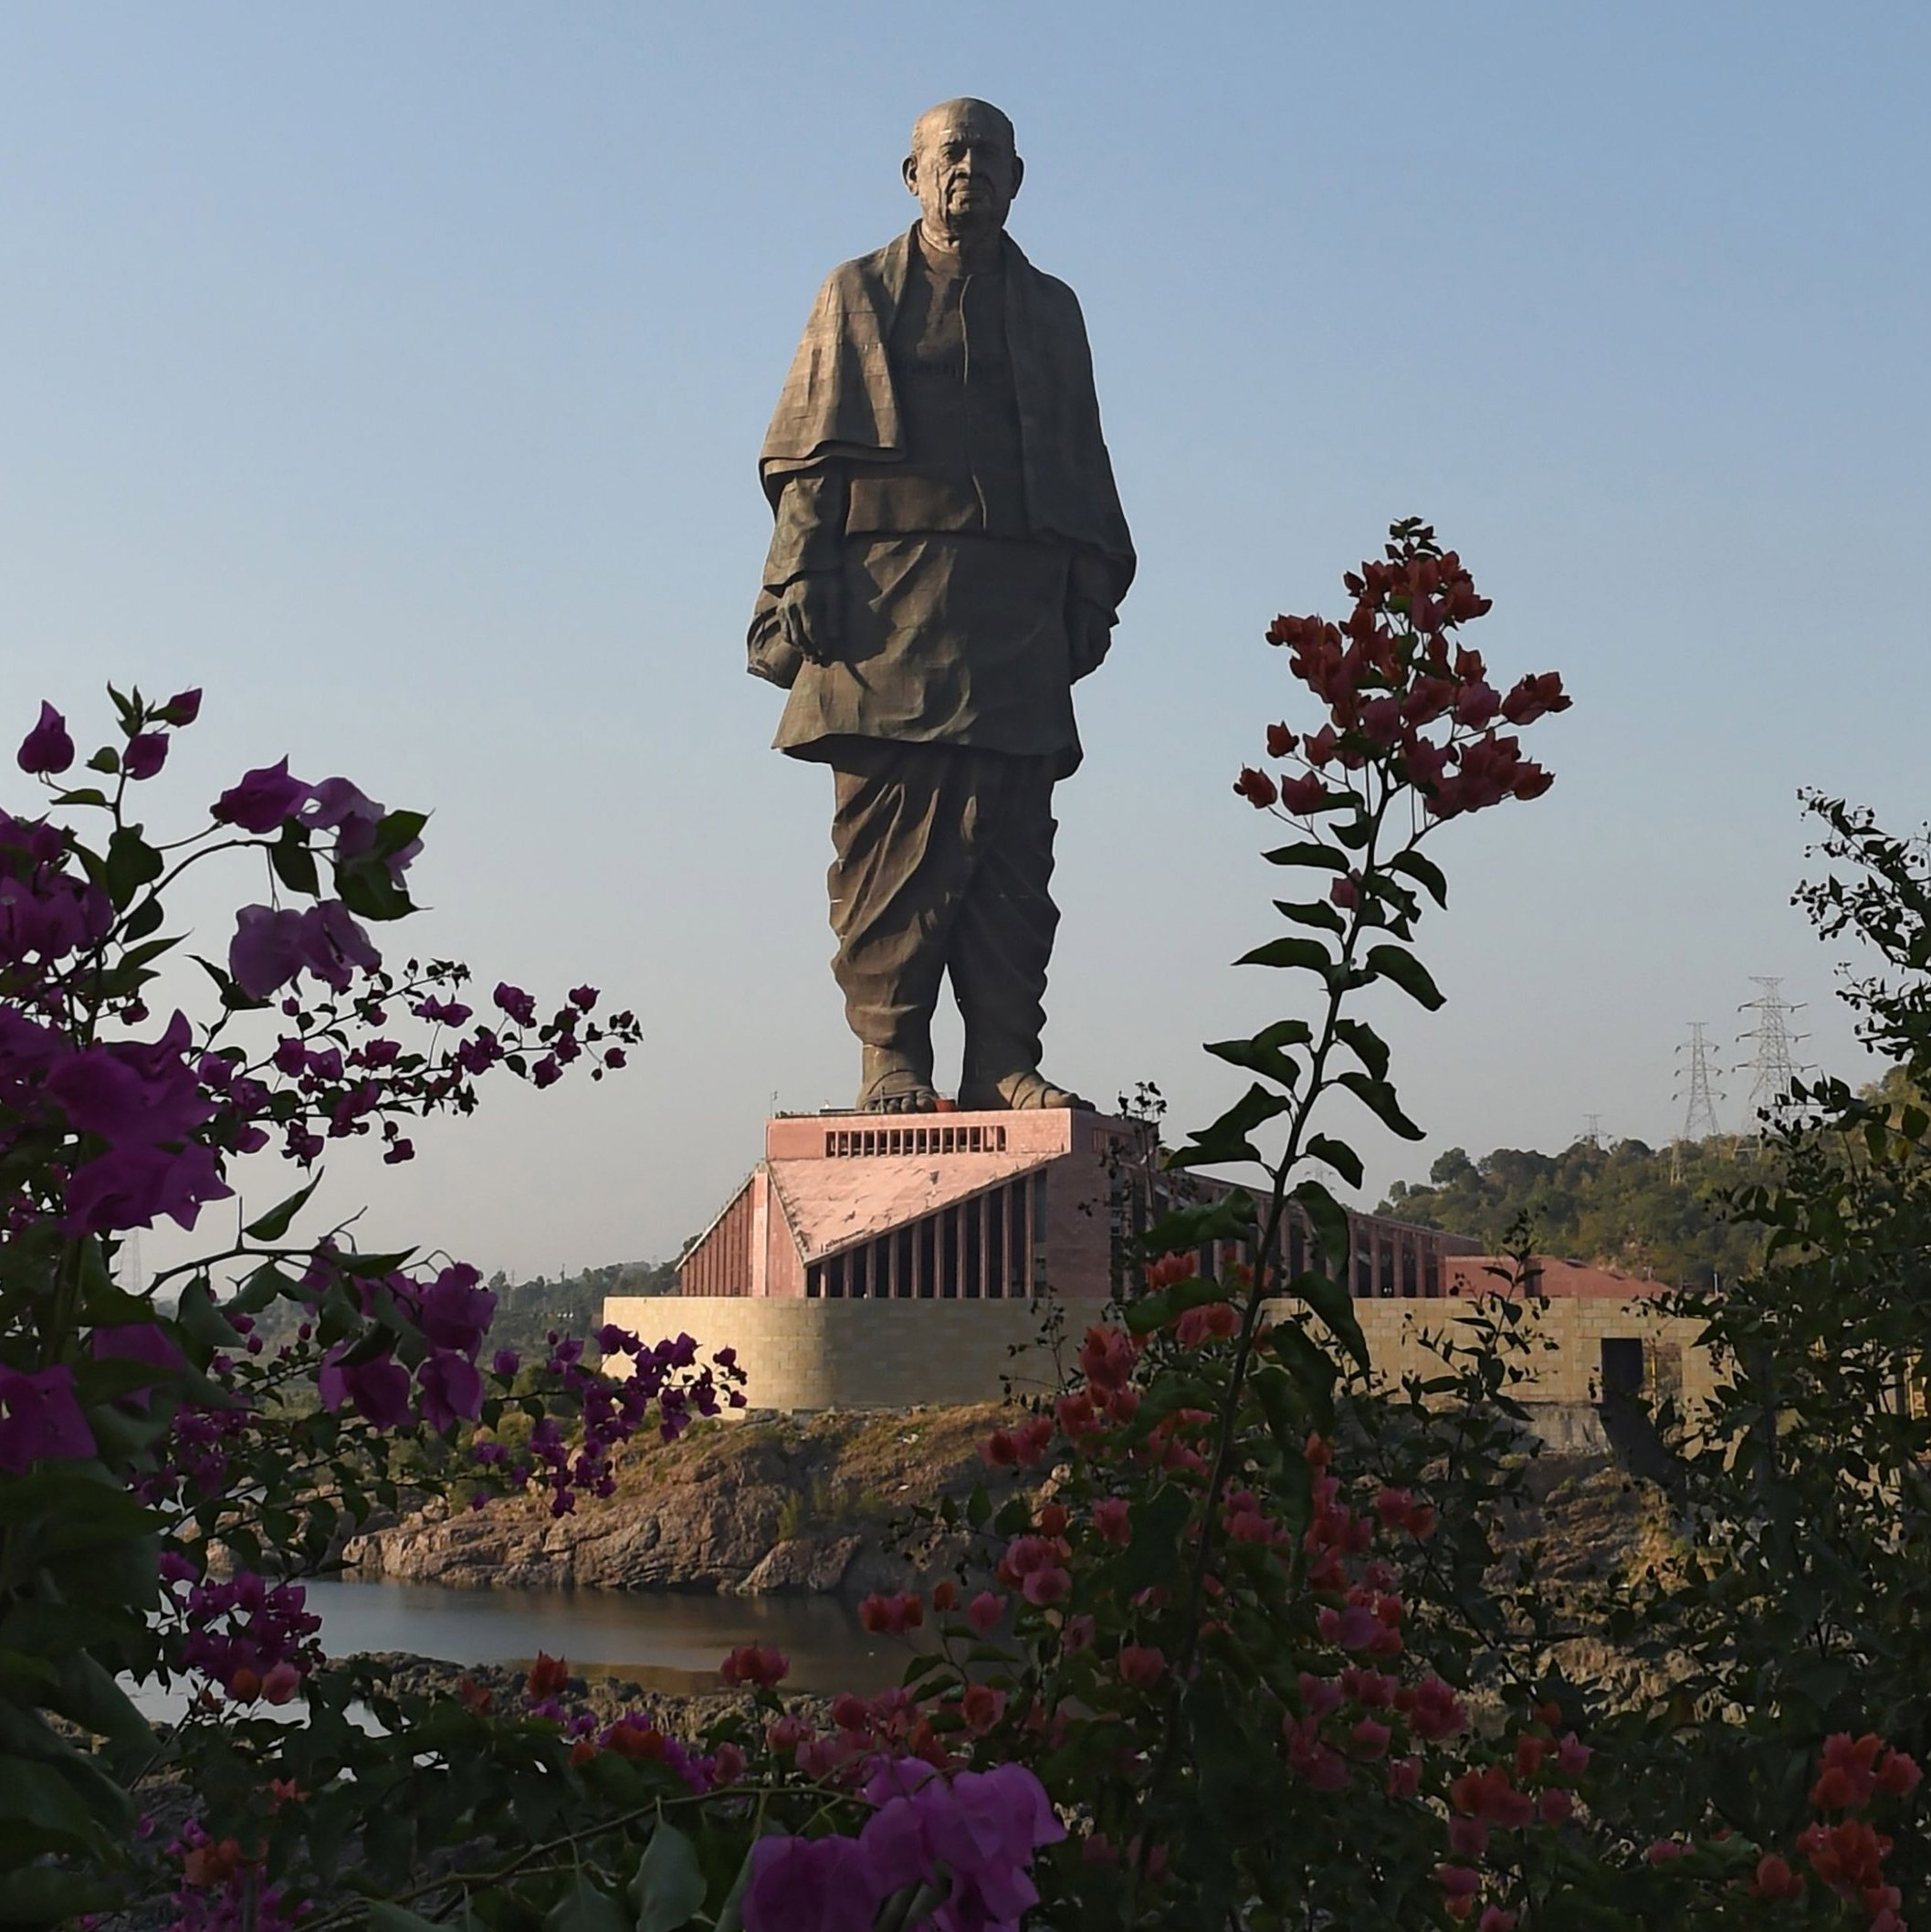 World's tallest statue, the Statue of Unity, unveiled in India